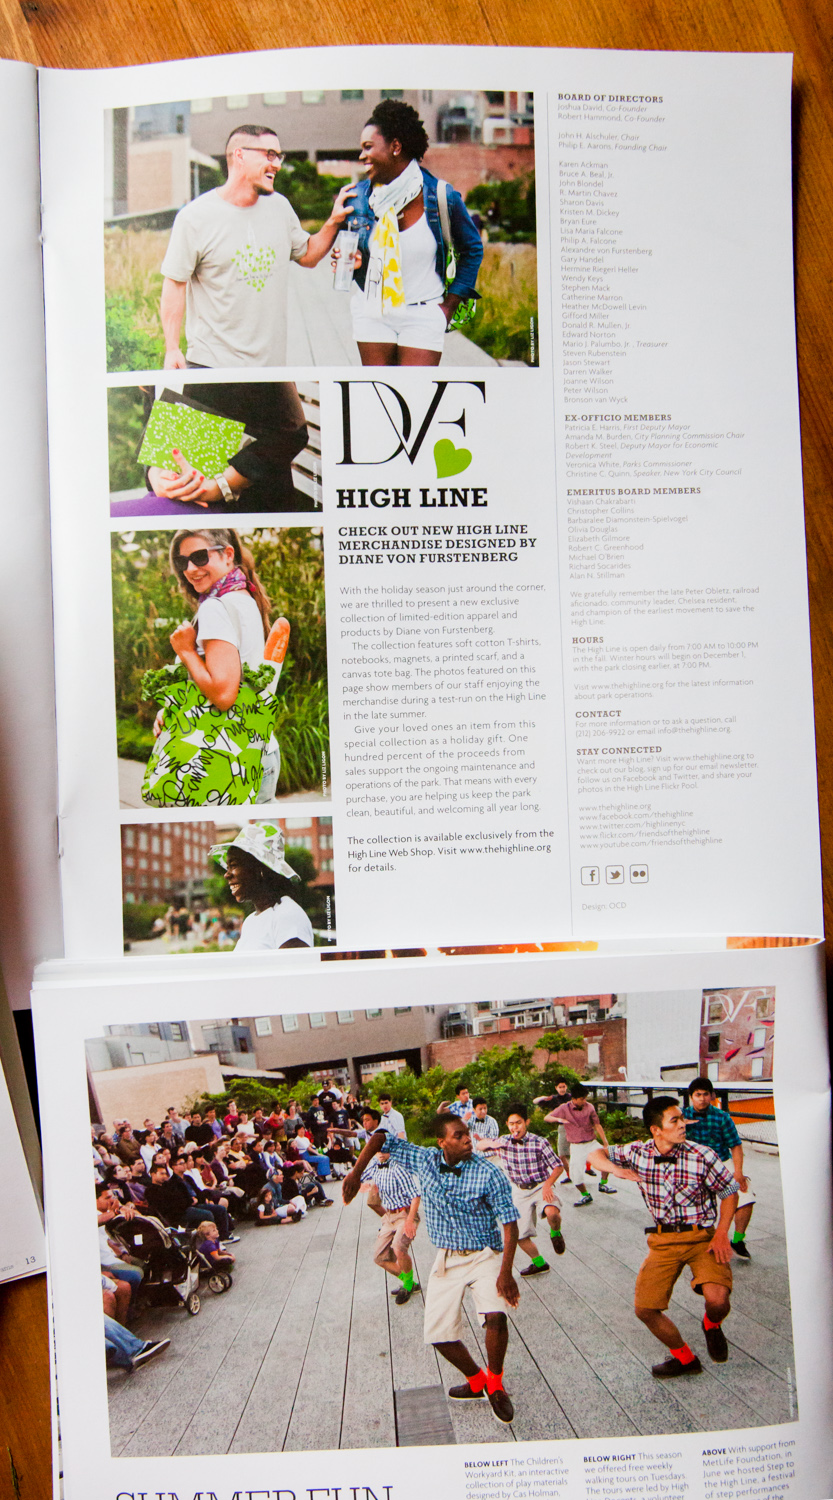 DVF Fashion & Summer Fun on the High Line